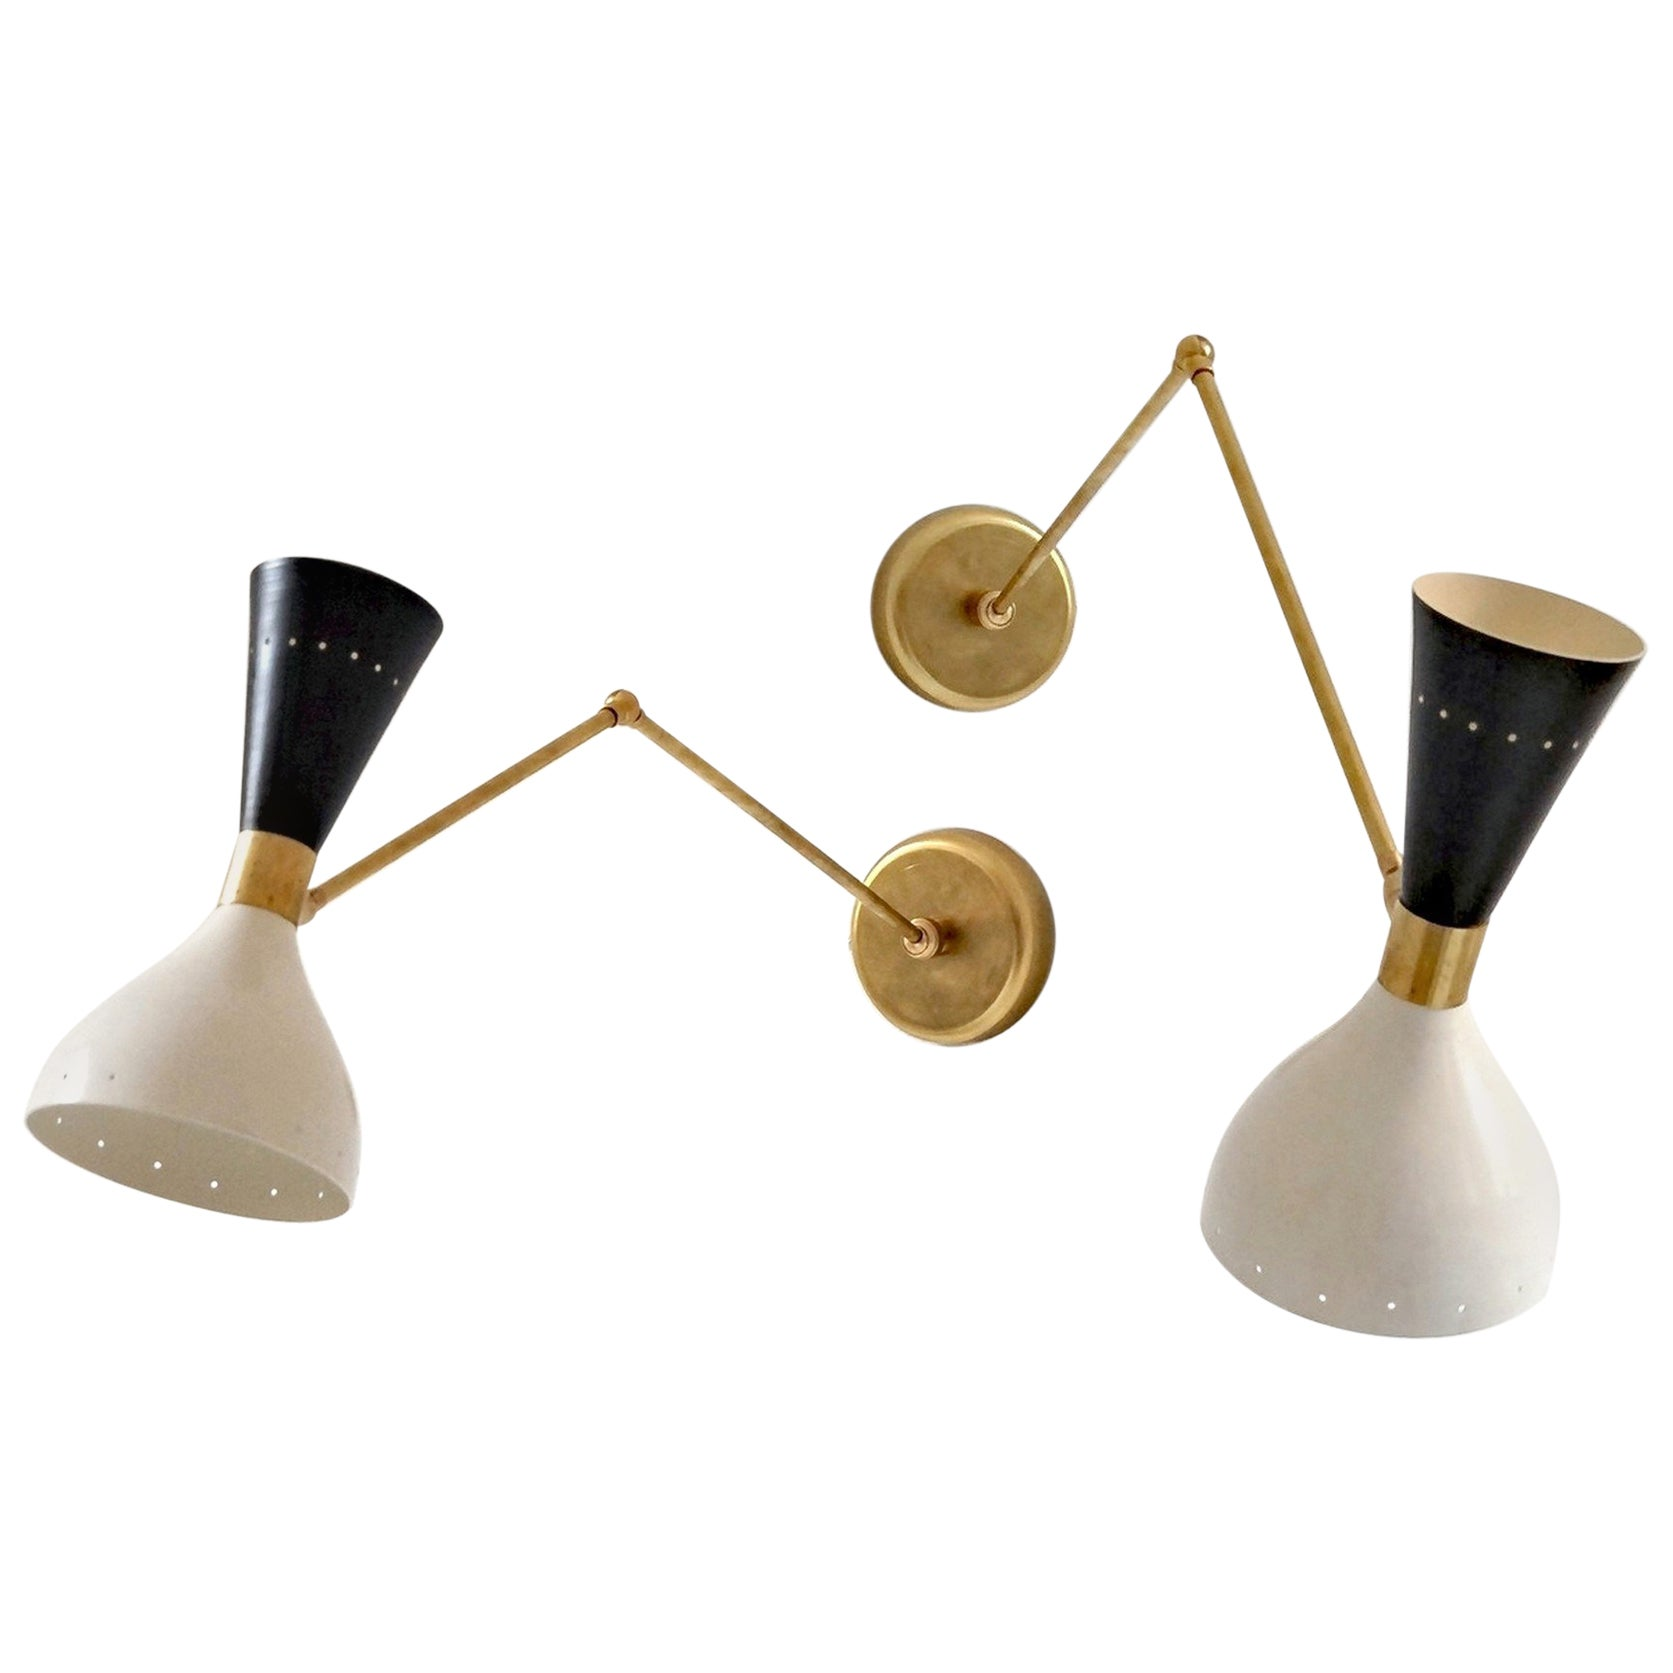 Articulated Sconce Mid-Century Modern Stilnovo Style Solid Brass Black and White